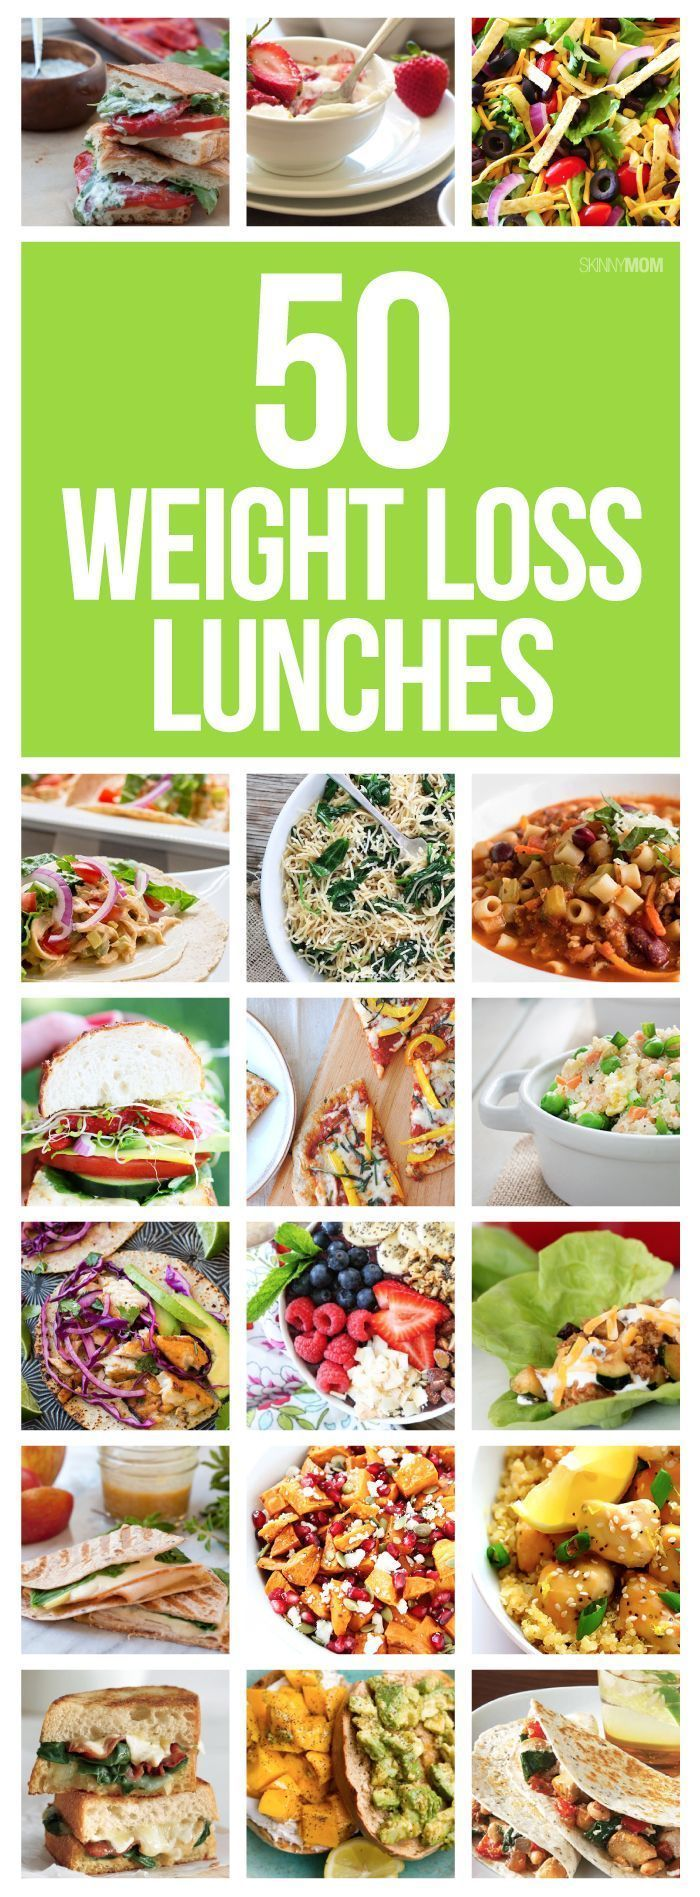 50 healthy lunches to help you LOSE WEIGHT! They are even meal prep friendly!